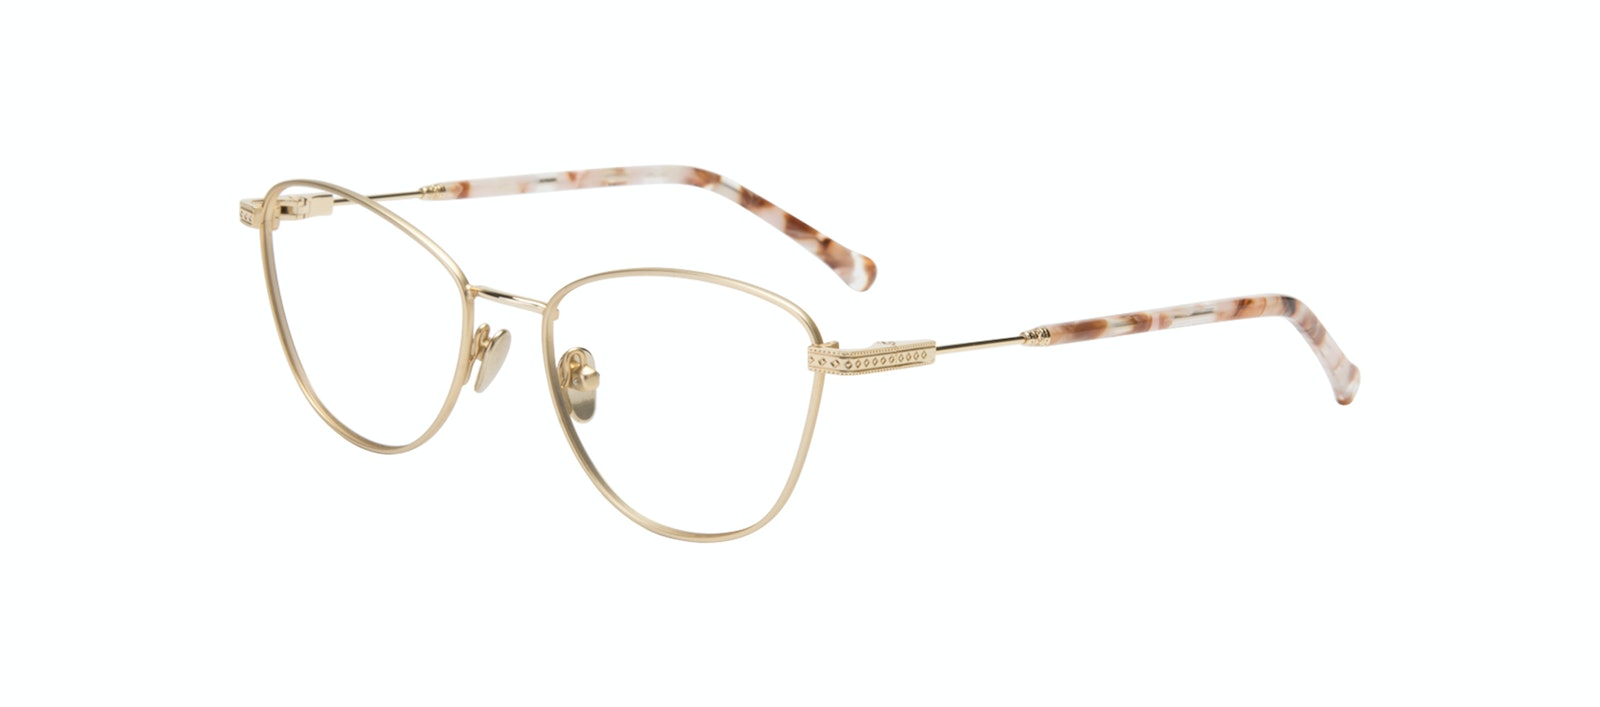 Affordable Fashion Glasses Cat Eye Eyeglasses Women Bow Golden Quartz Tilt